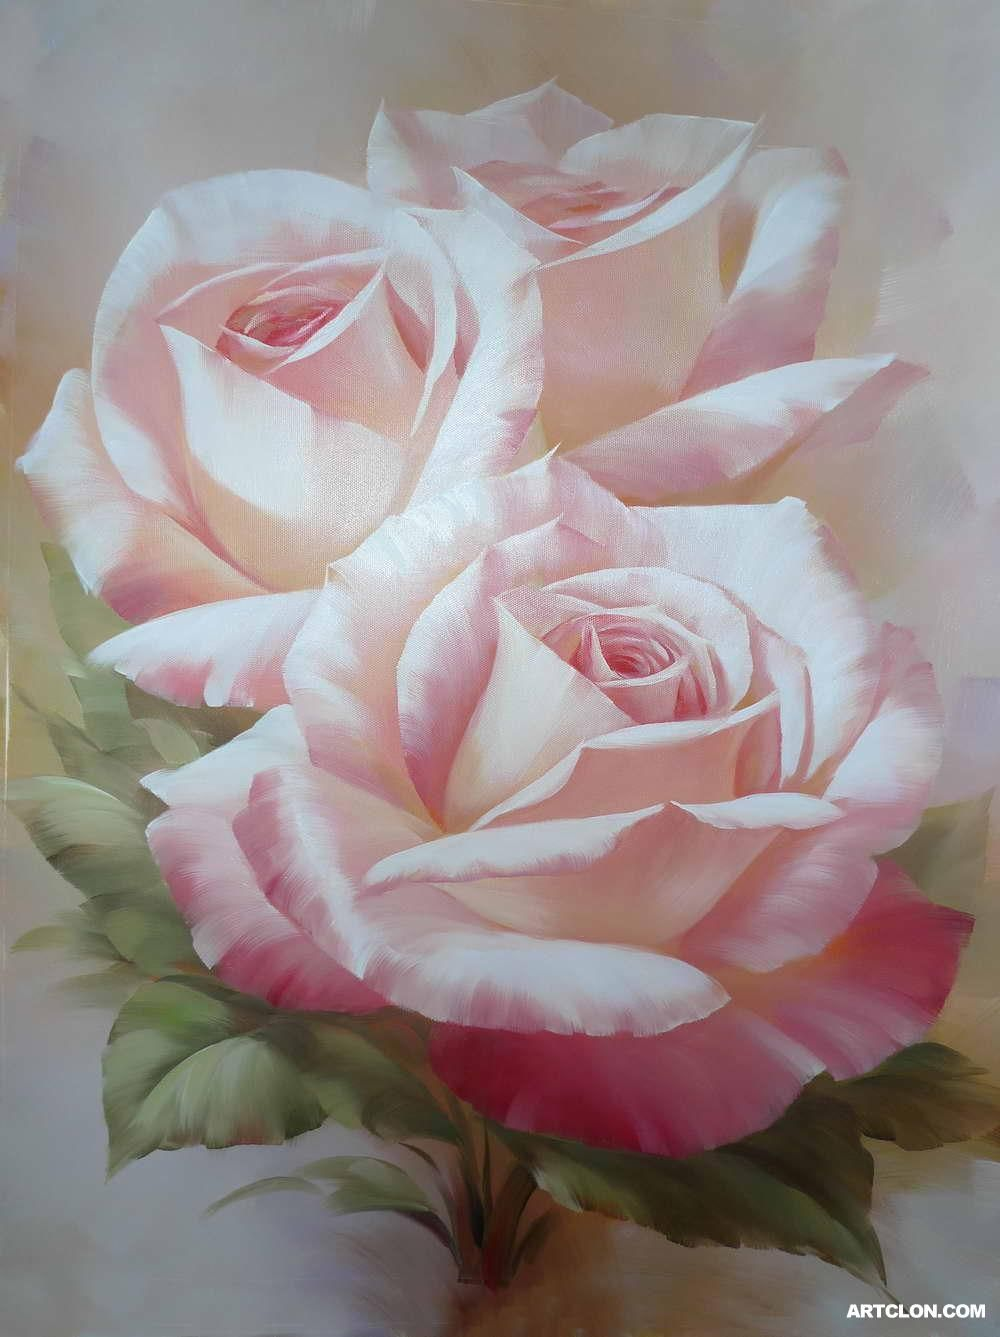 Oil painting flowers roses images for How to oil paint flowers